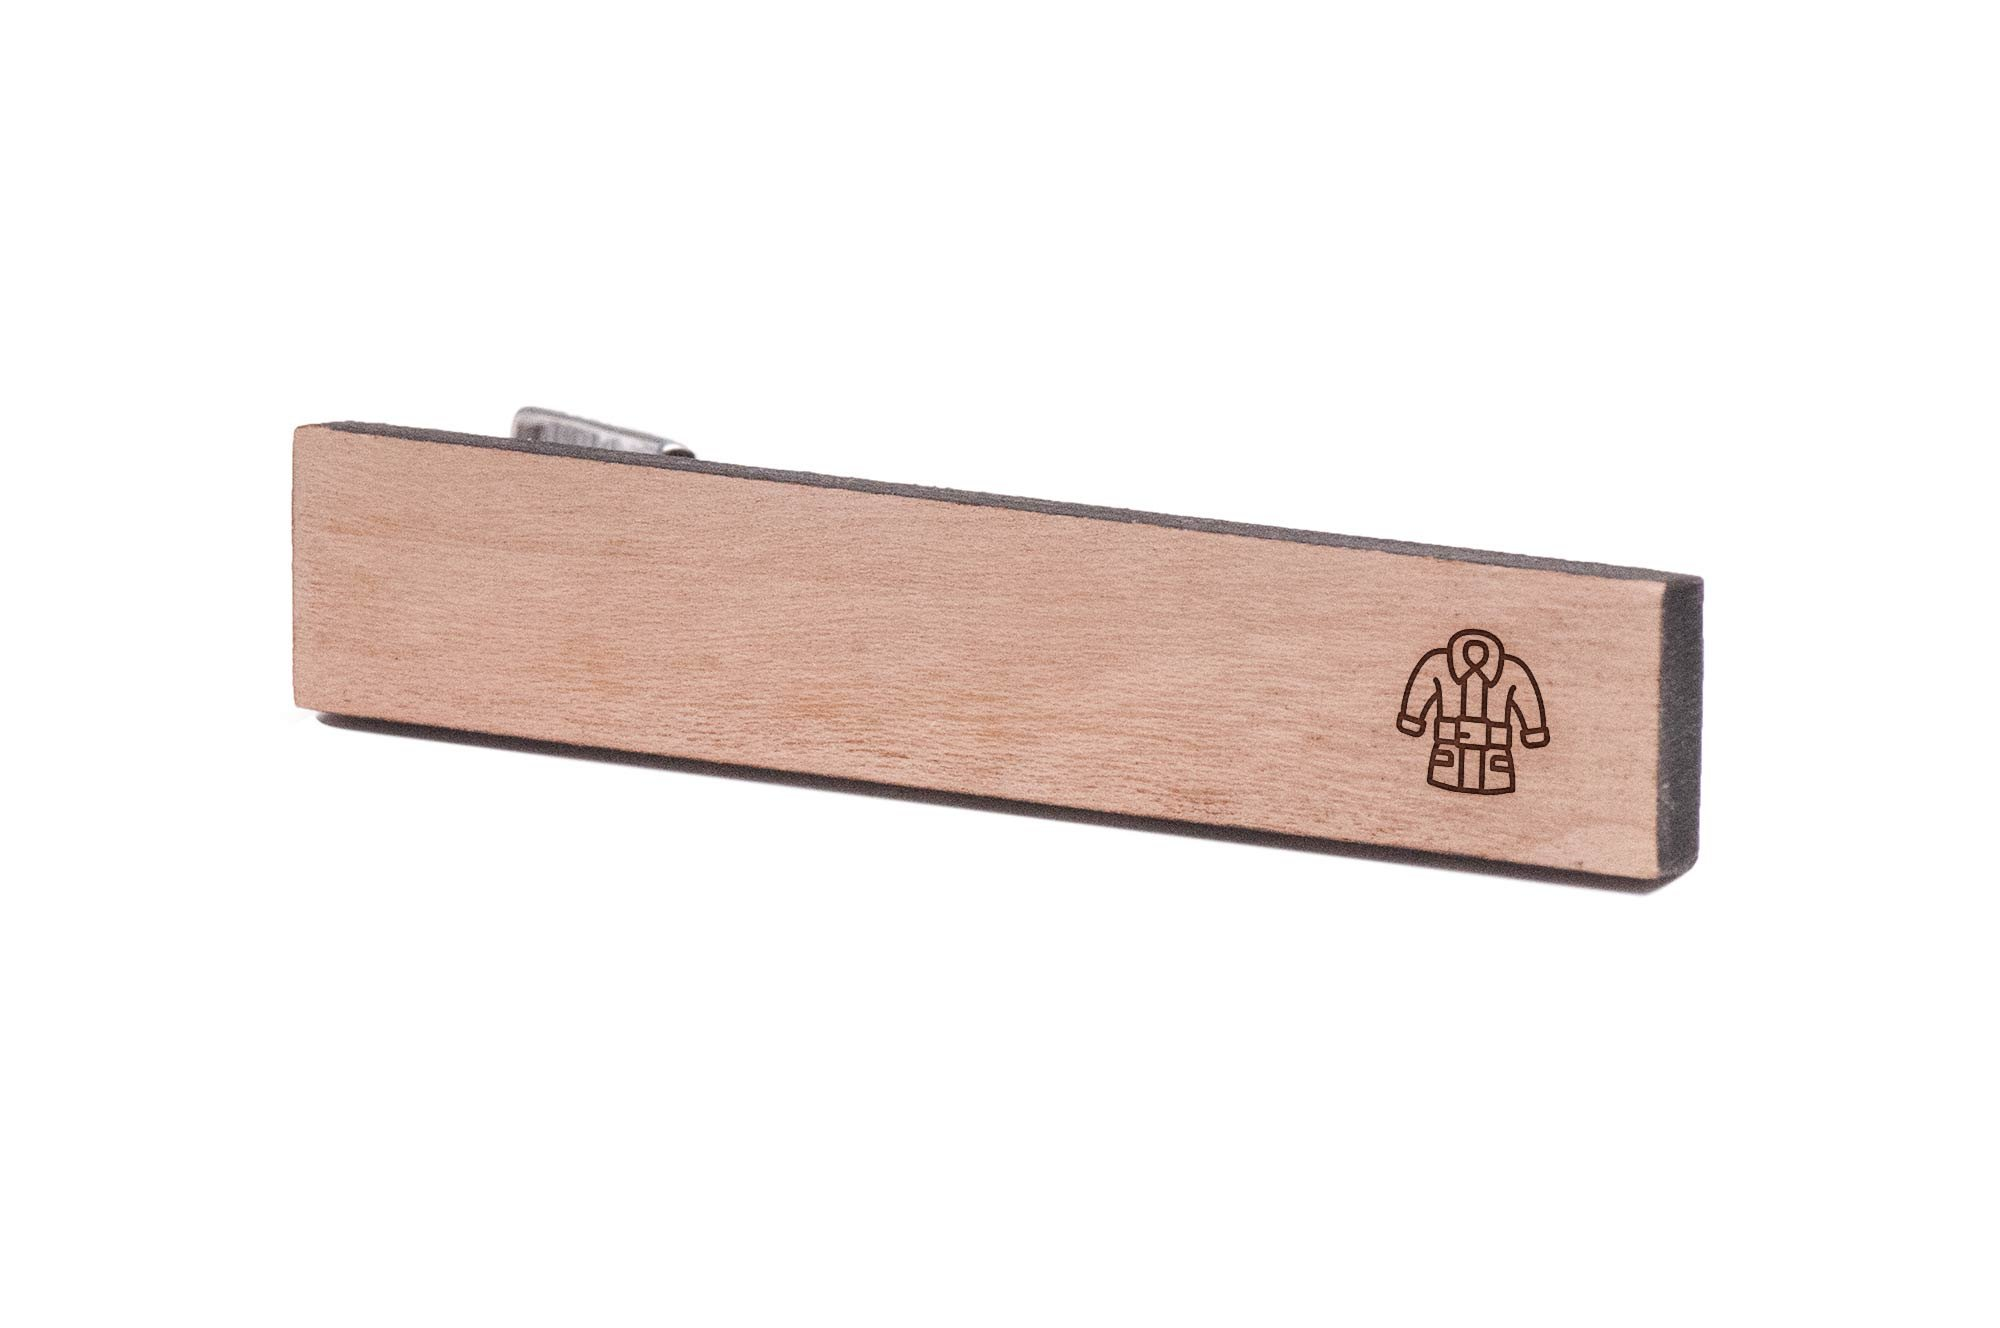 WOODEN ACCESSORIES COMPANY Wooden Tie Clips With Laser Engraved Santas Jacket Design - Cherry Wood Tie Bar Engraved In The USA